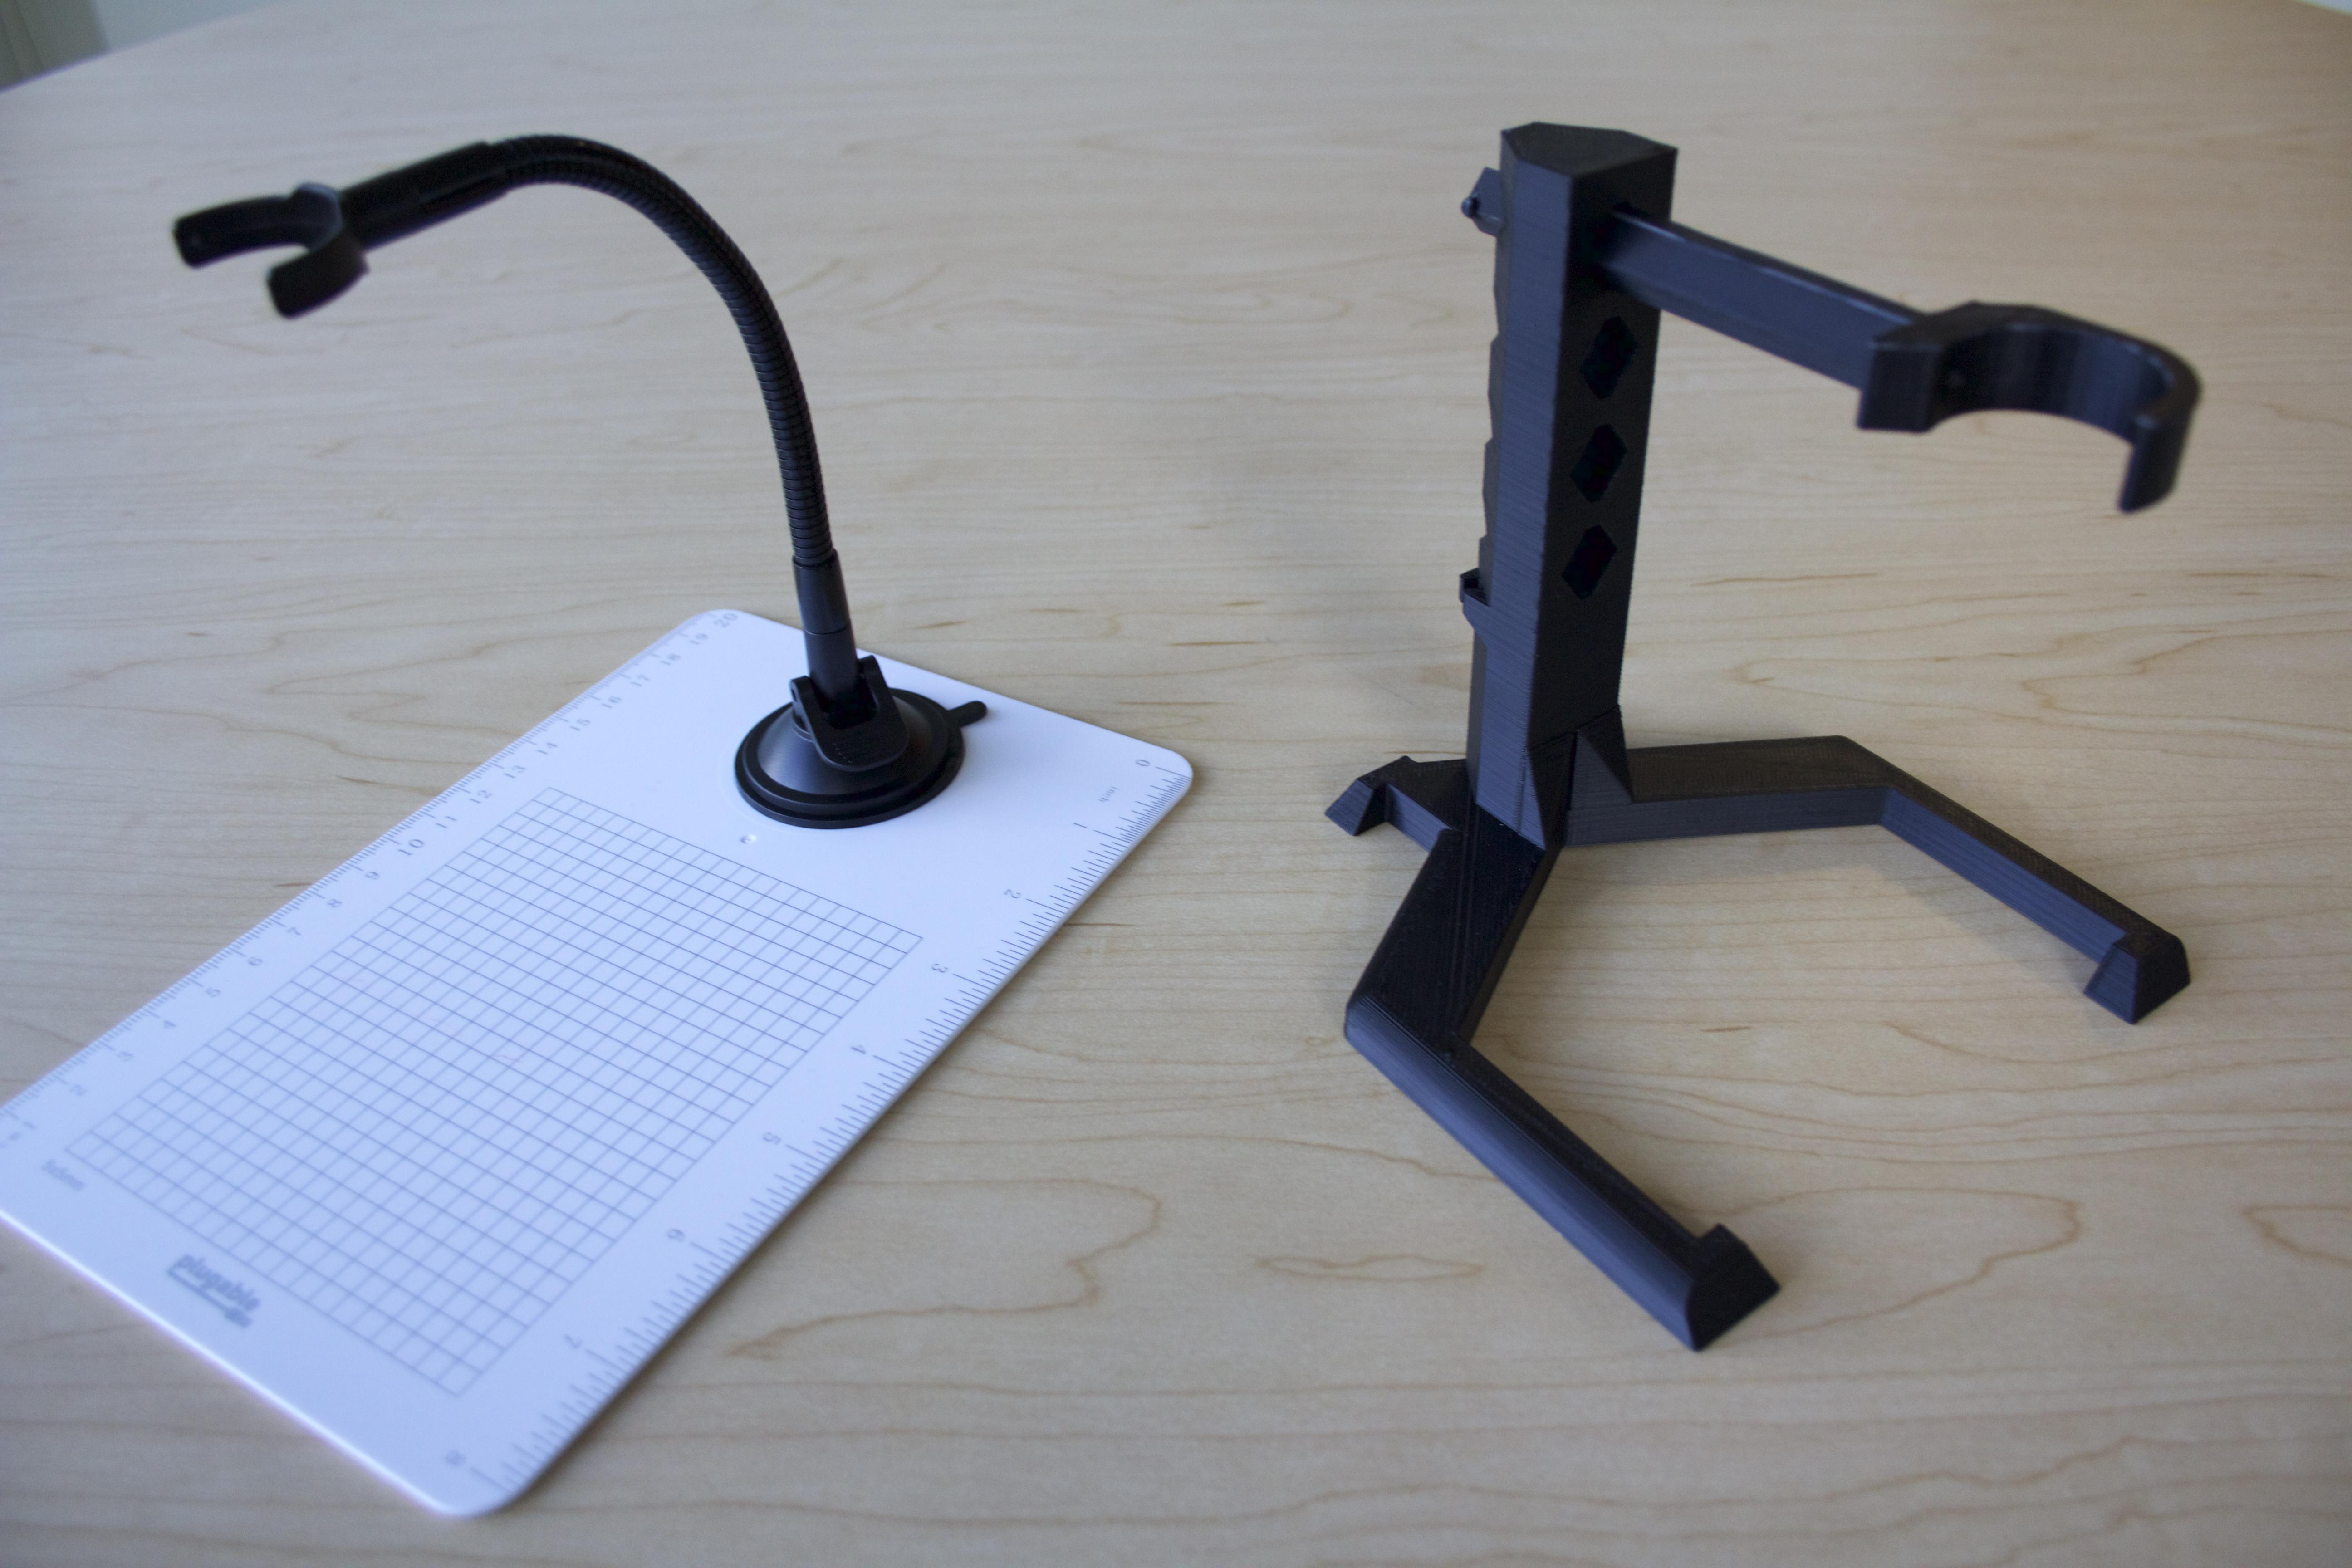 While the original stand for the microscope is flexible the new stand is more stable and rigid